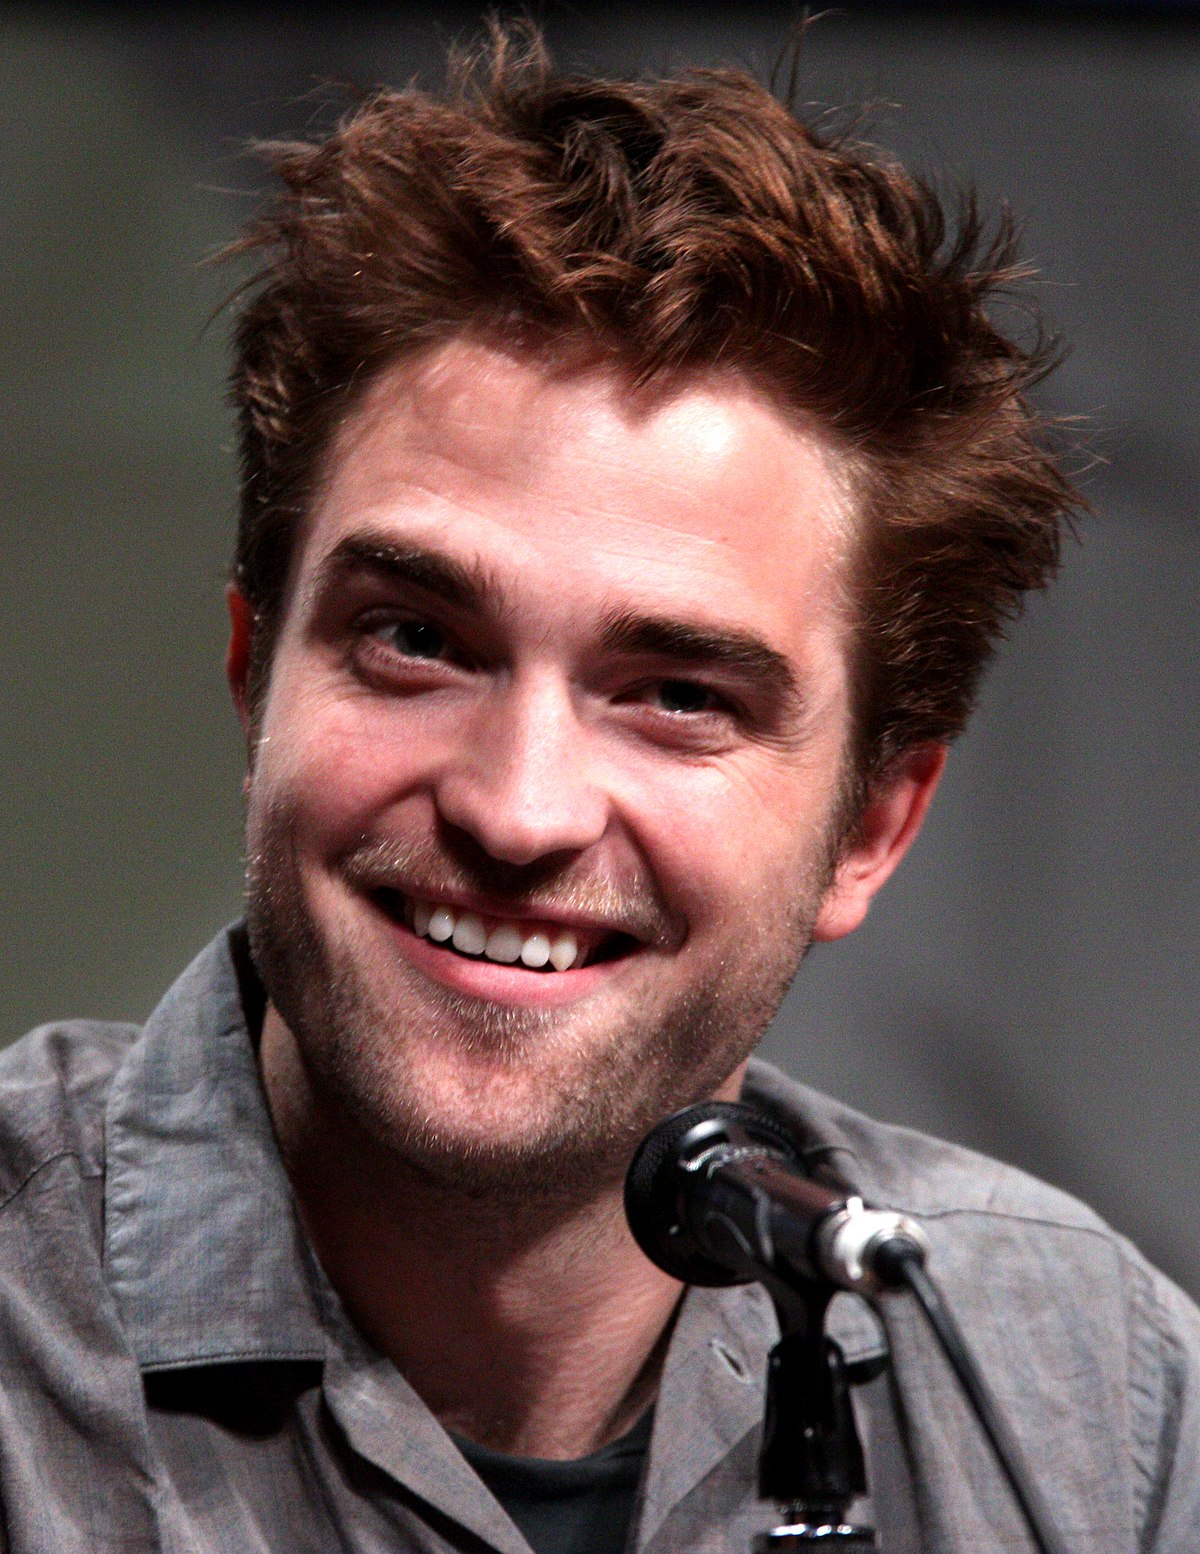 robert pattinson - photo #27